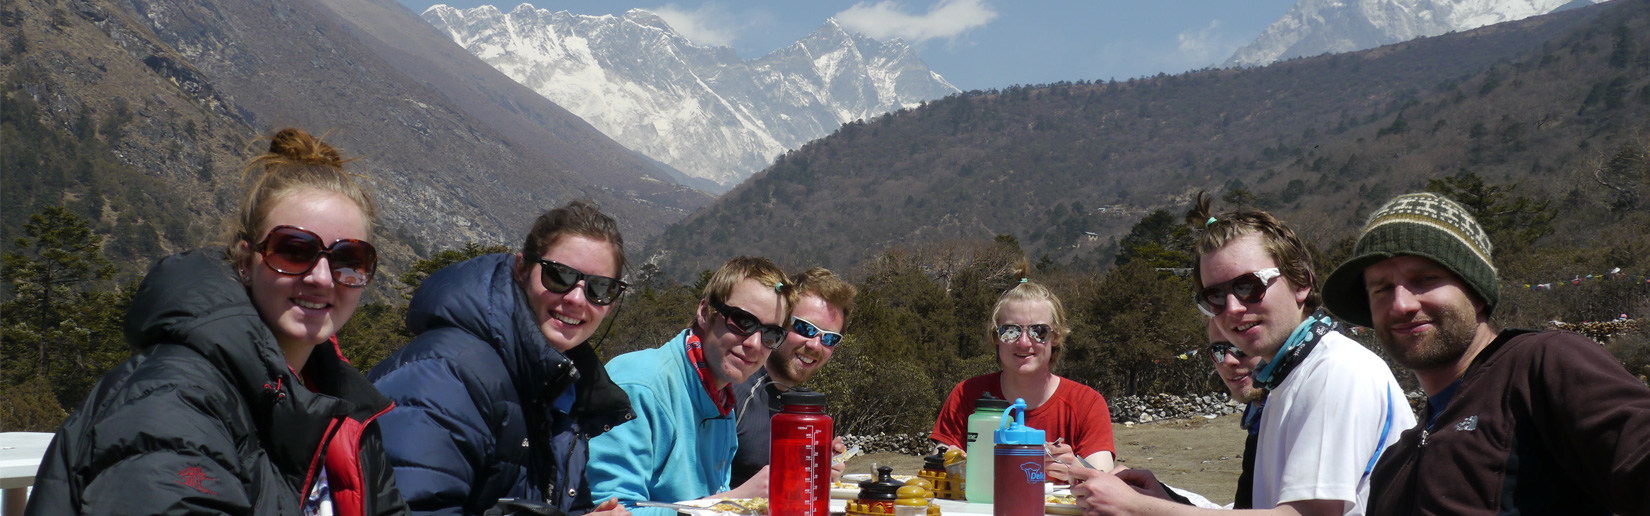 Lunch time at Everest Region